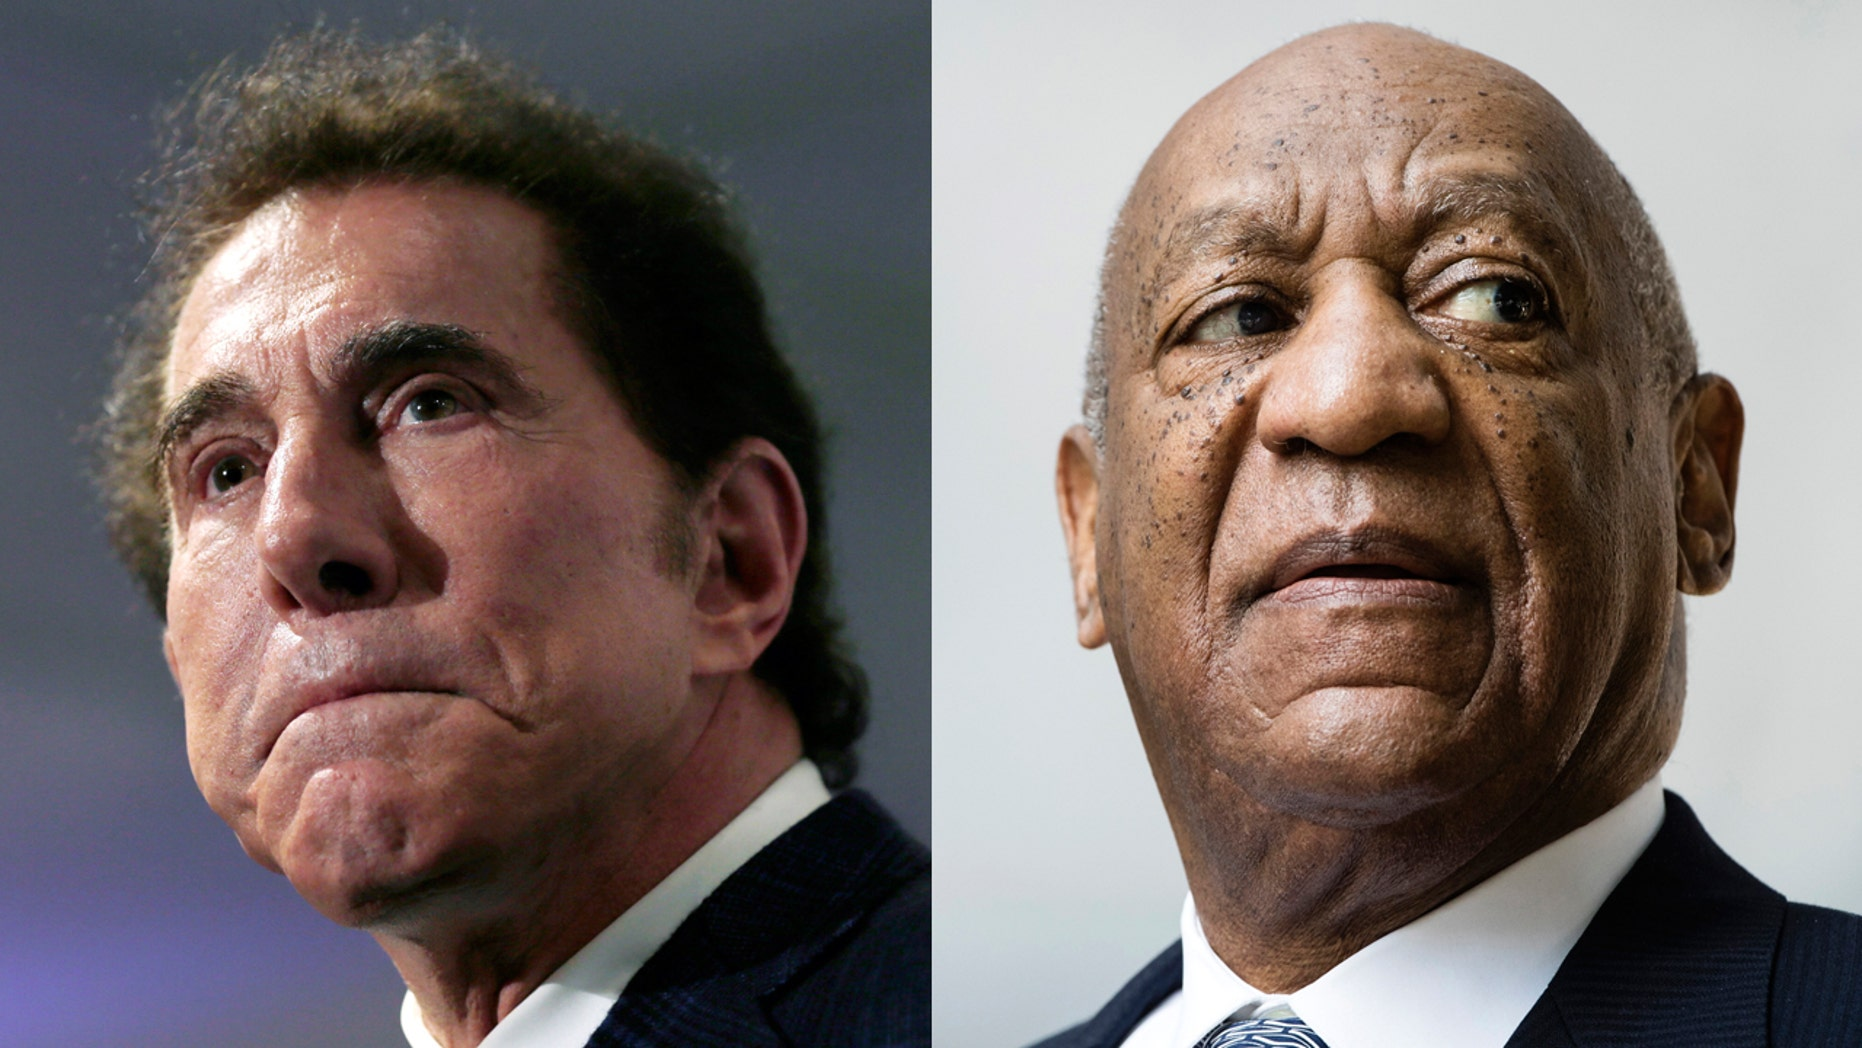 Steve Wynn, left, and Bill Cosby, right, get honorary degrees from the University of Pennsylvania rescinded following sexual abuse scandals.